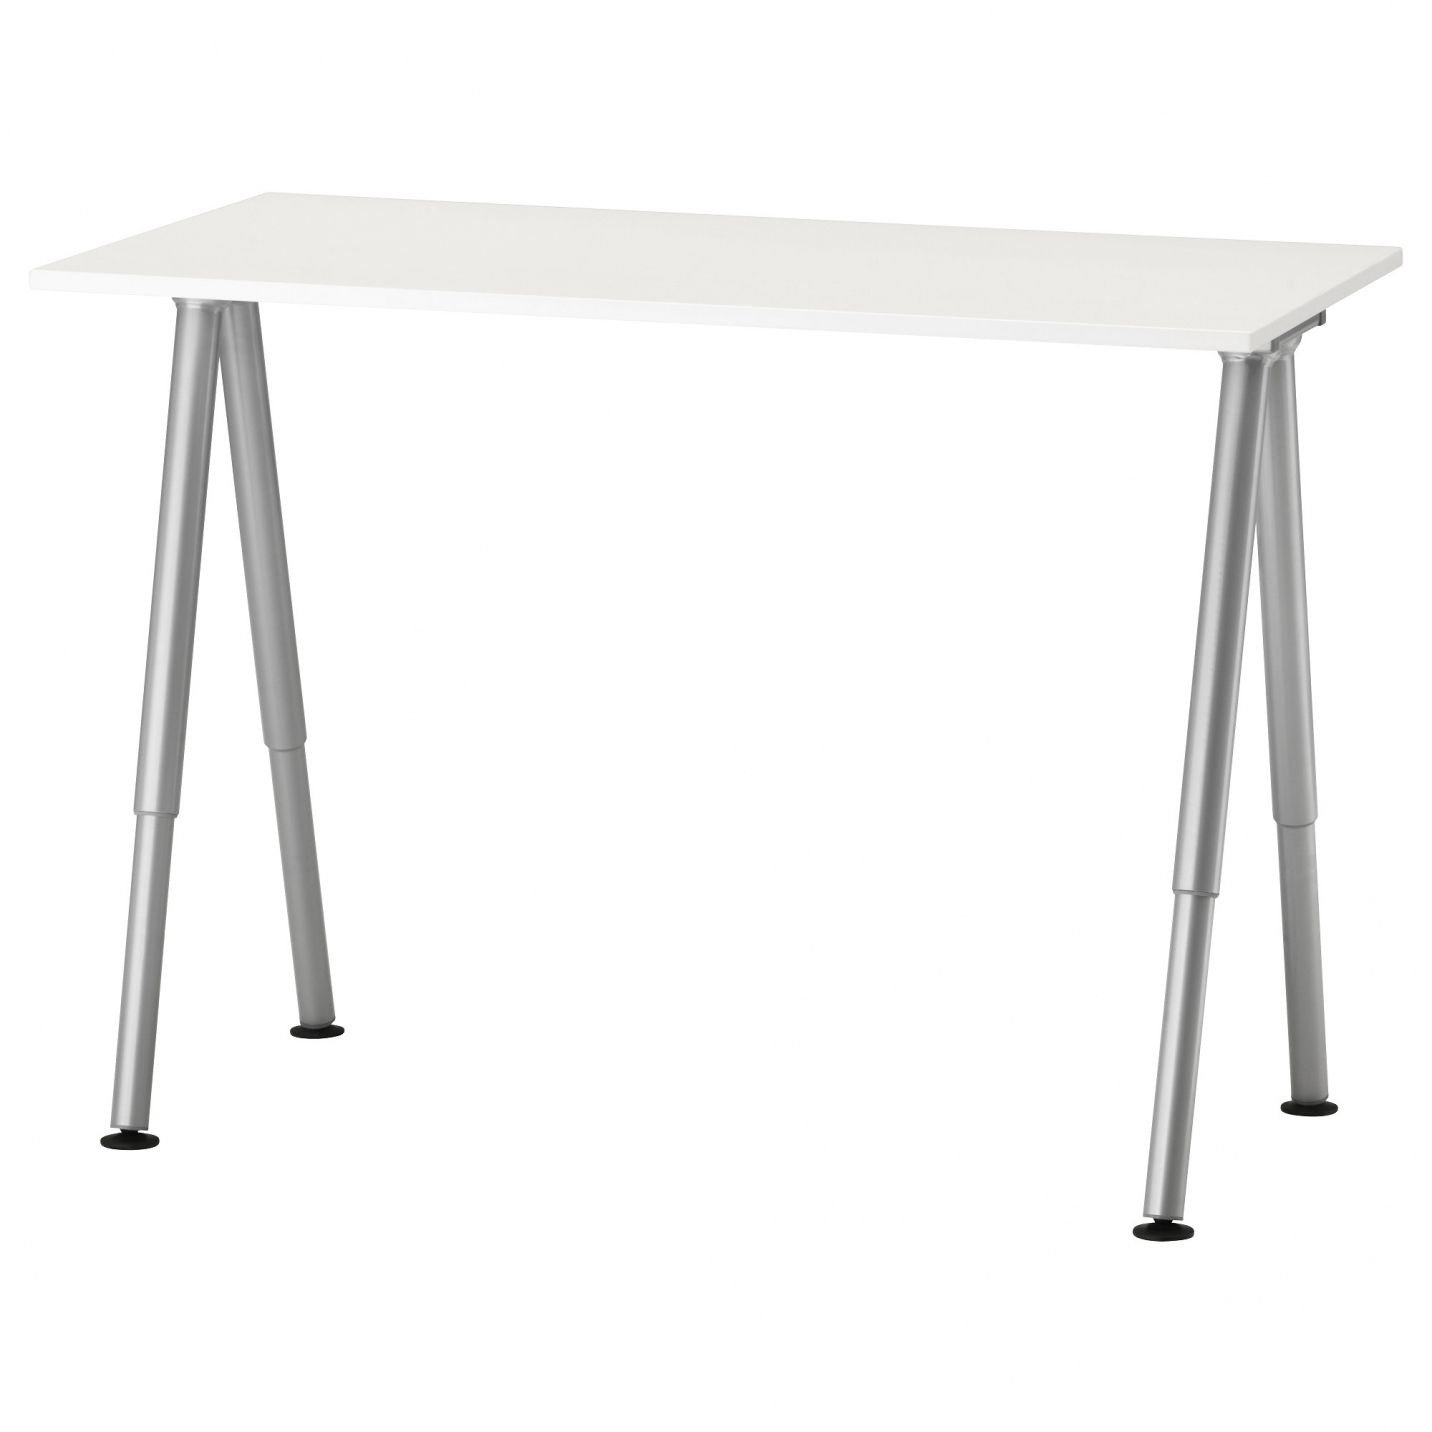 ikea glass office desk. Ikea Glass Office Desk - Real Wood Home Furniture Check More At Http:/ S